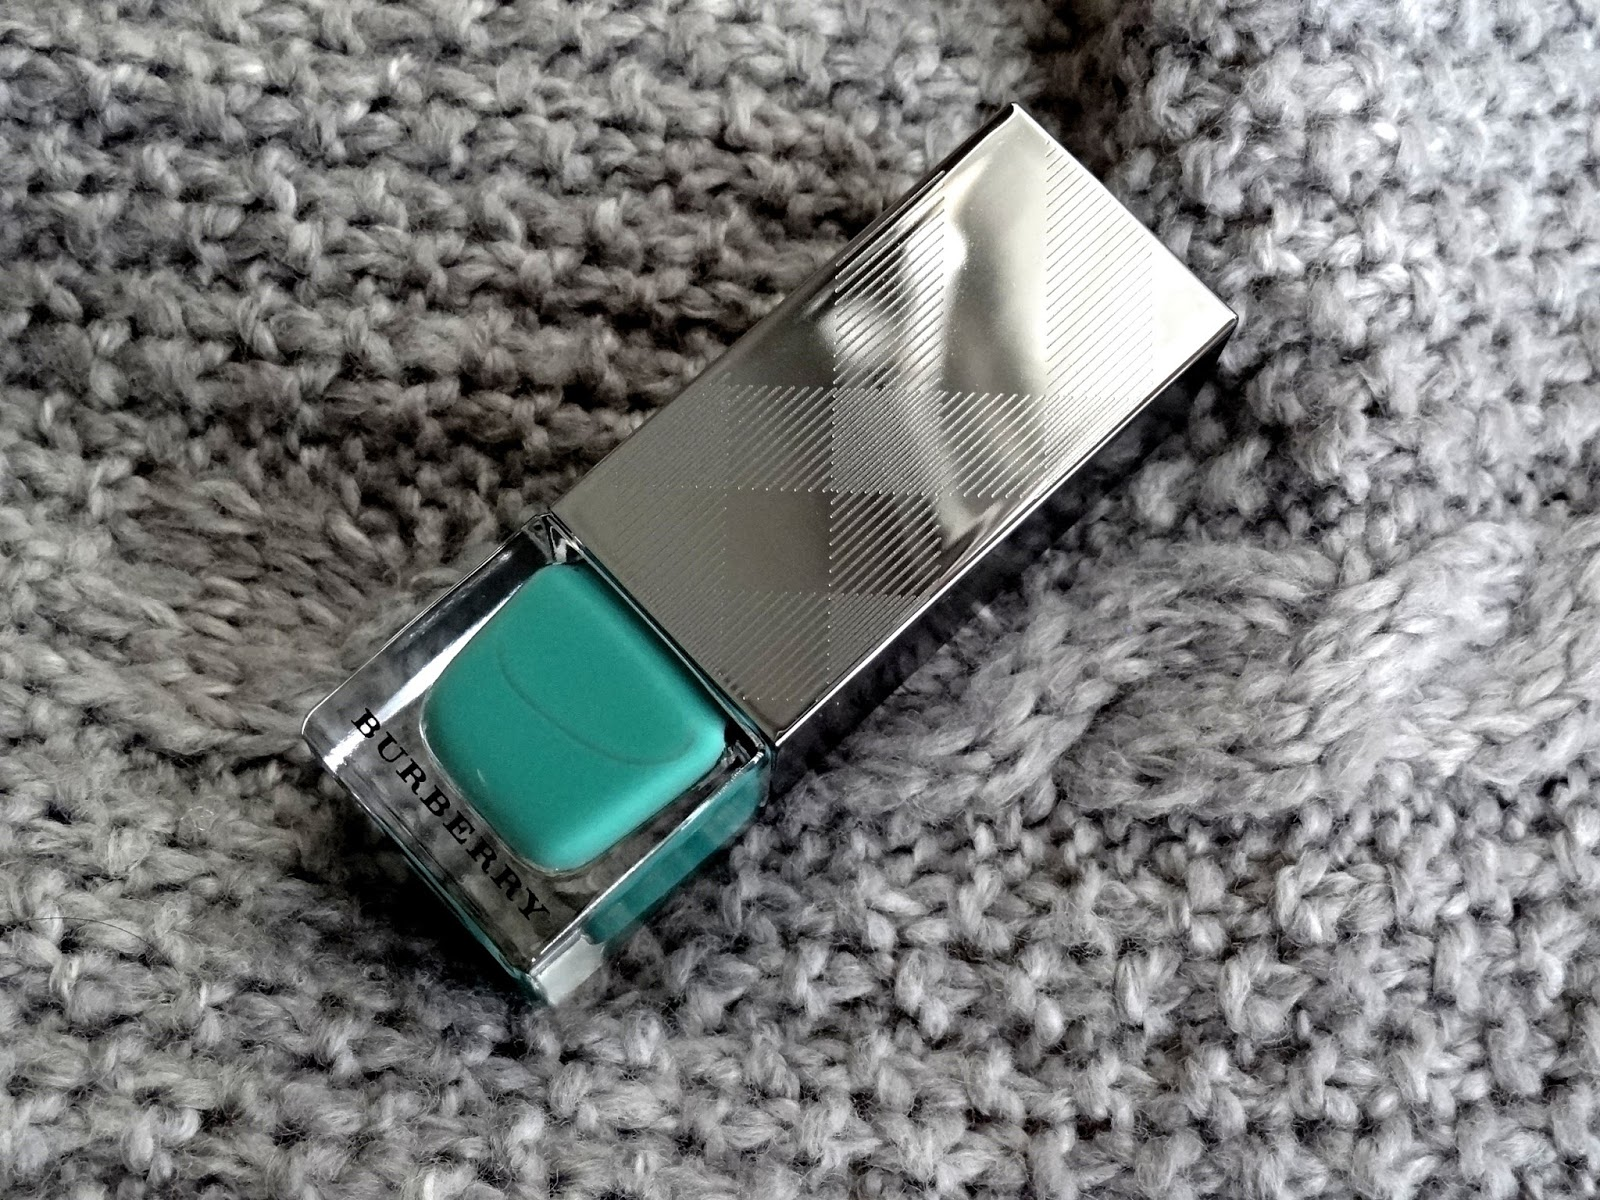 Burberry Beauty Nail Polish in Aqua Green No.418 Review, Photos & Swatches